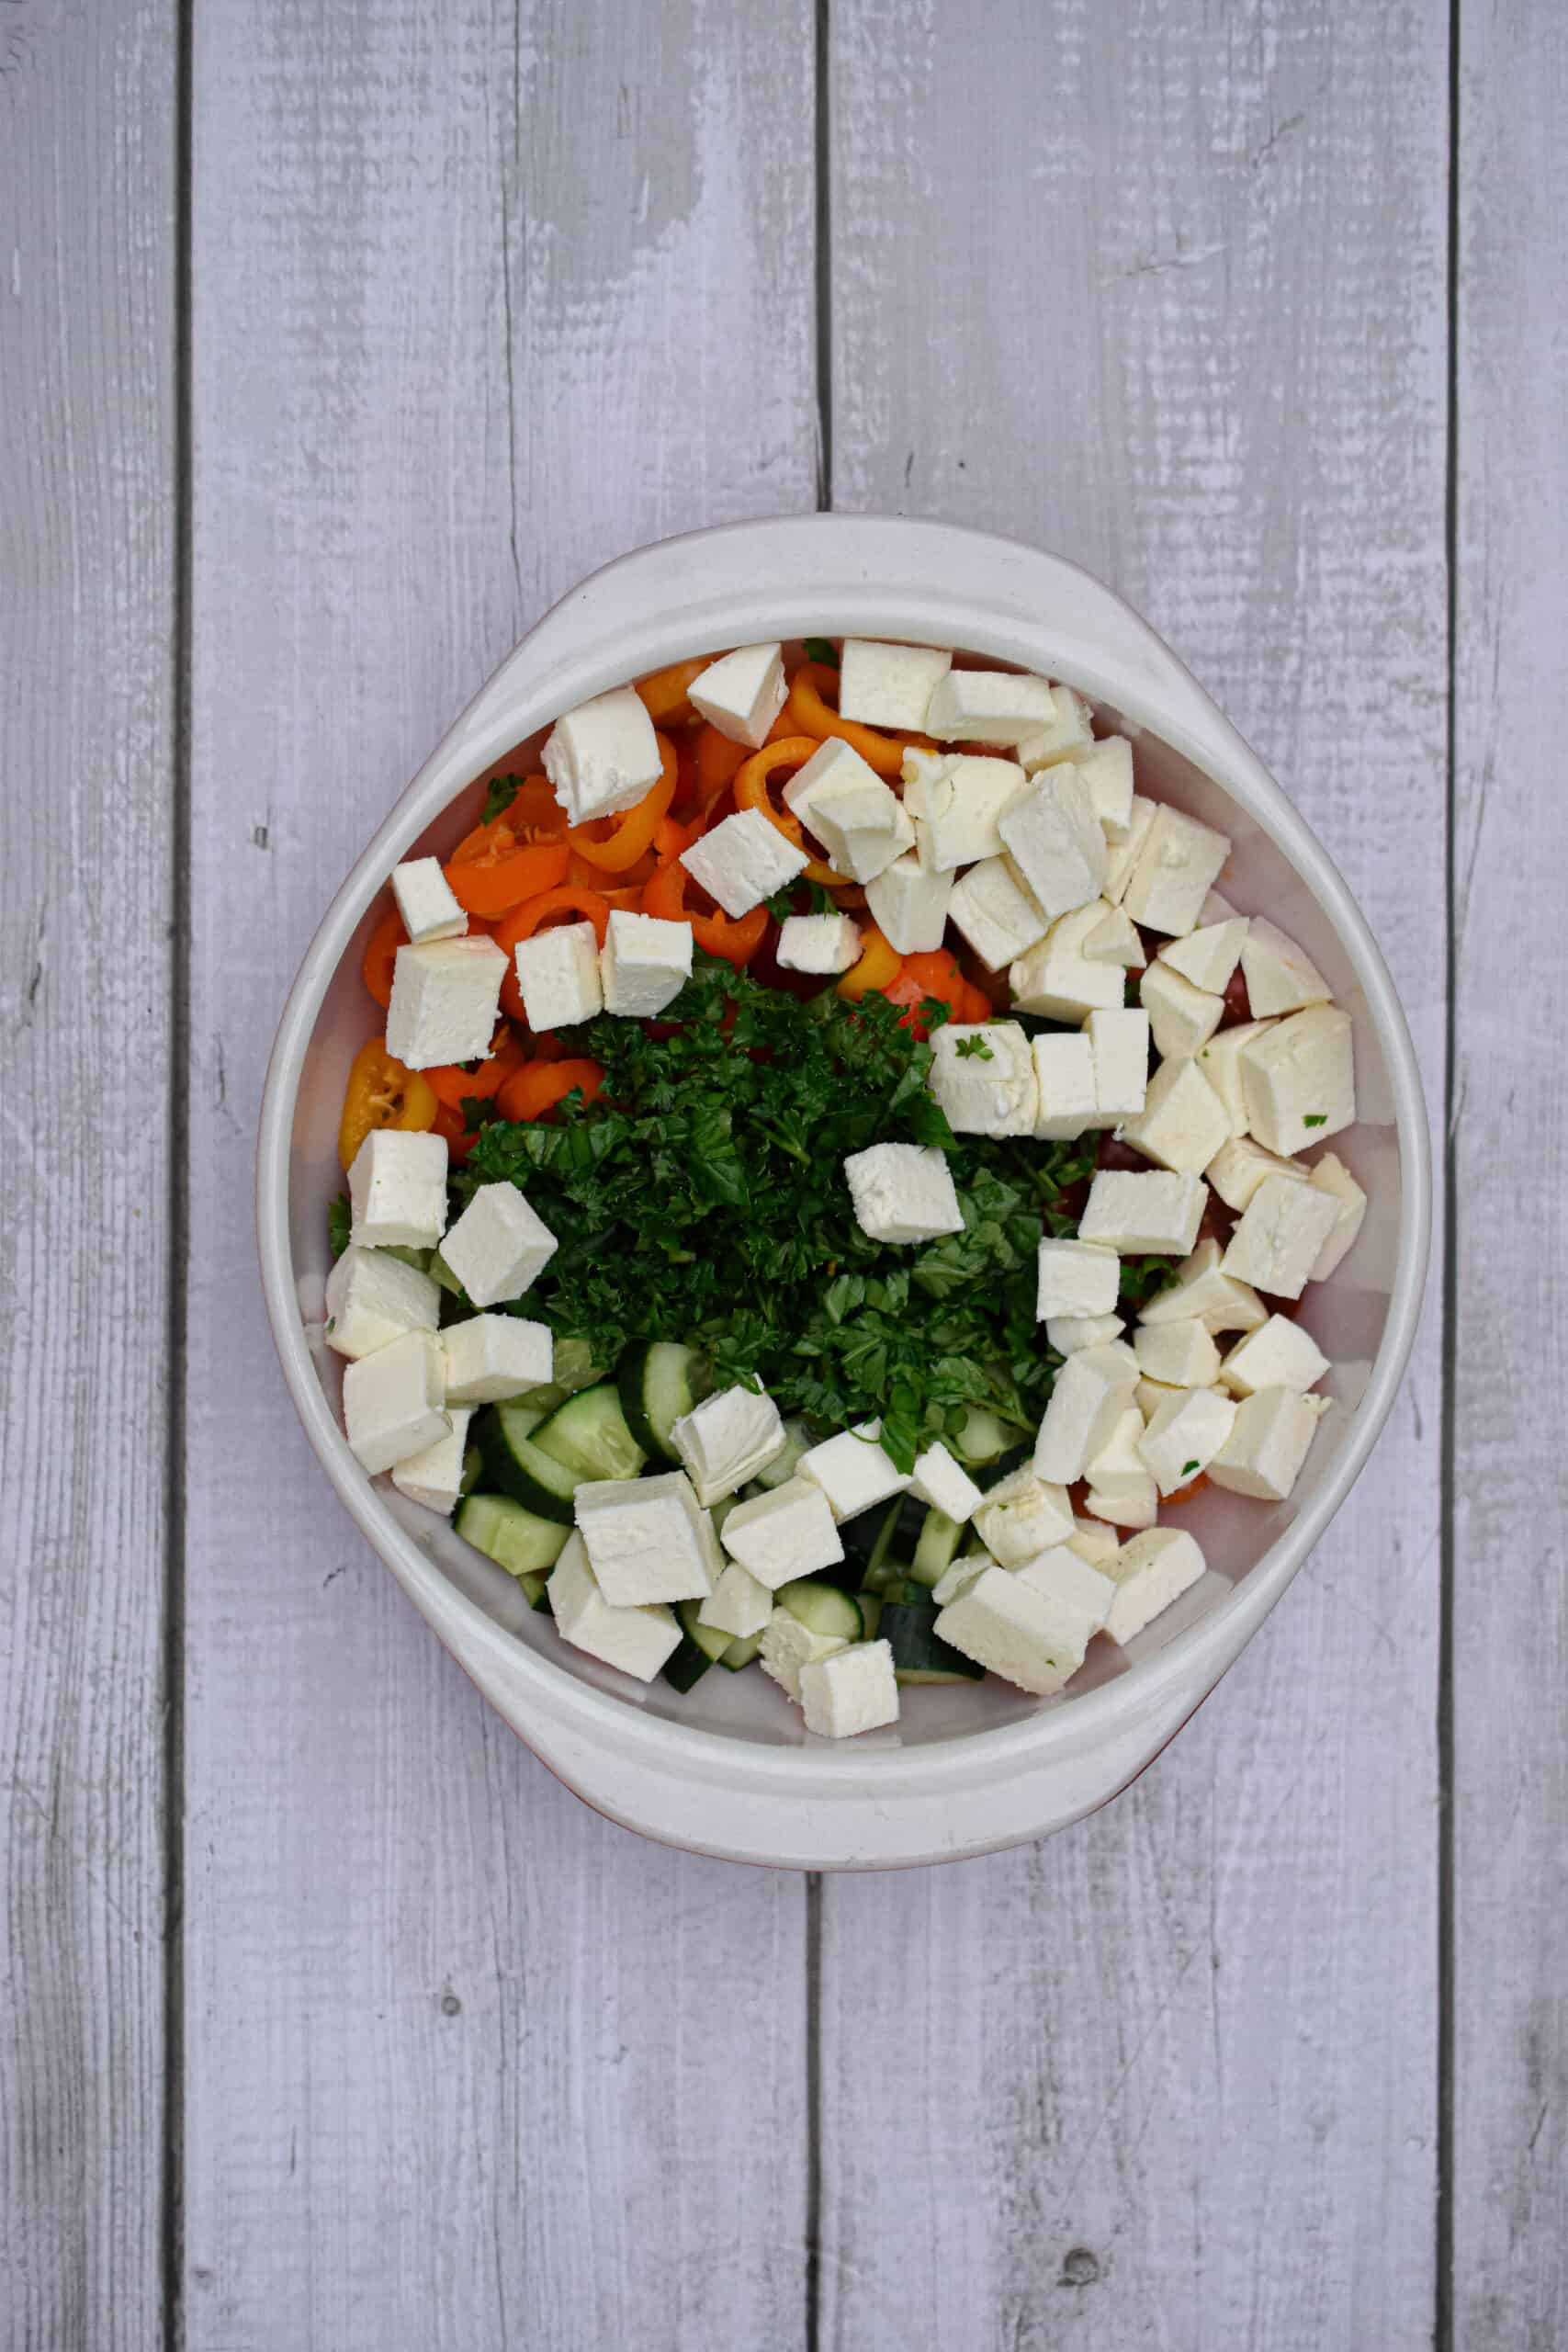 The chopped fresh mozzarella and chopped herbs are added to the bowl